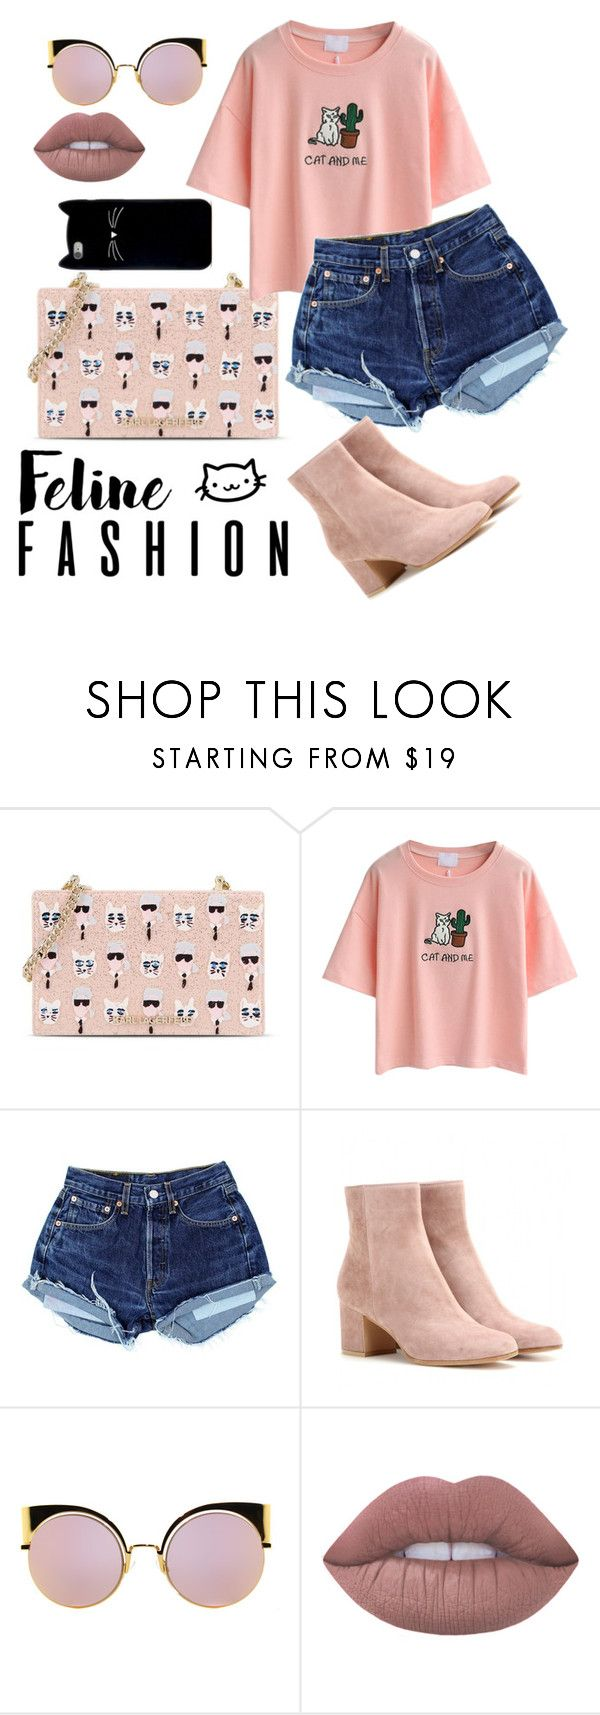 """""""kittyyyy party"""" by beingmyselfaf ❤ liked on Polyvore featuring Karl Lagerfeld, WithChic, Gianvito Rossi, Fendi, Lime Crime and Forever 21"""